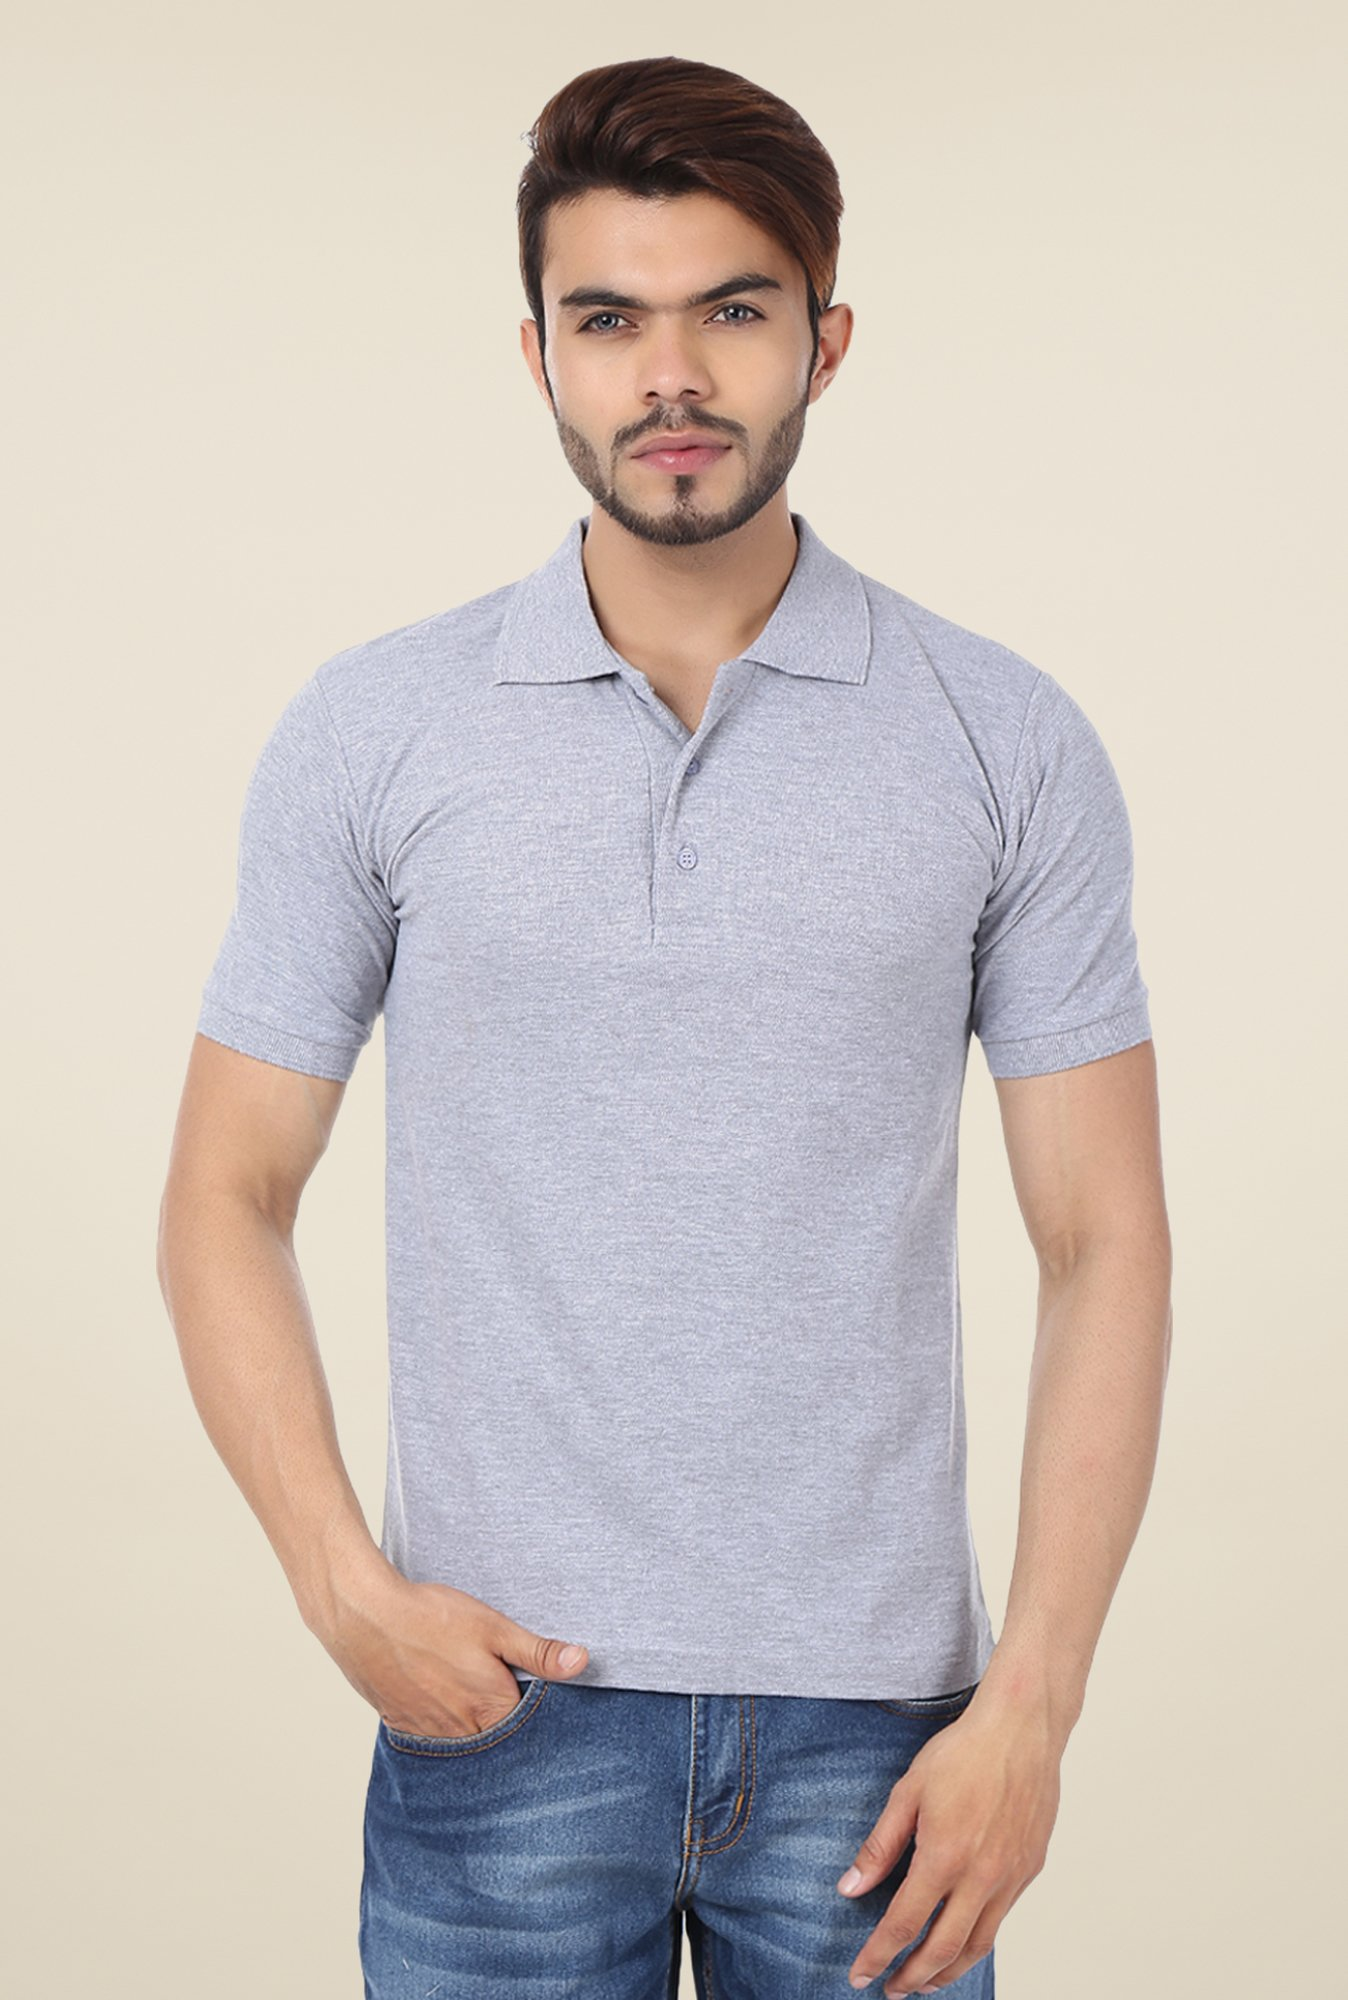 Weardo Grey Polo T Shirt